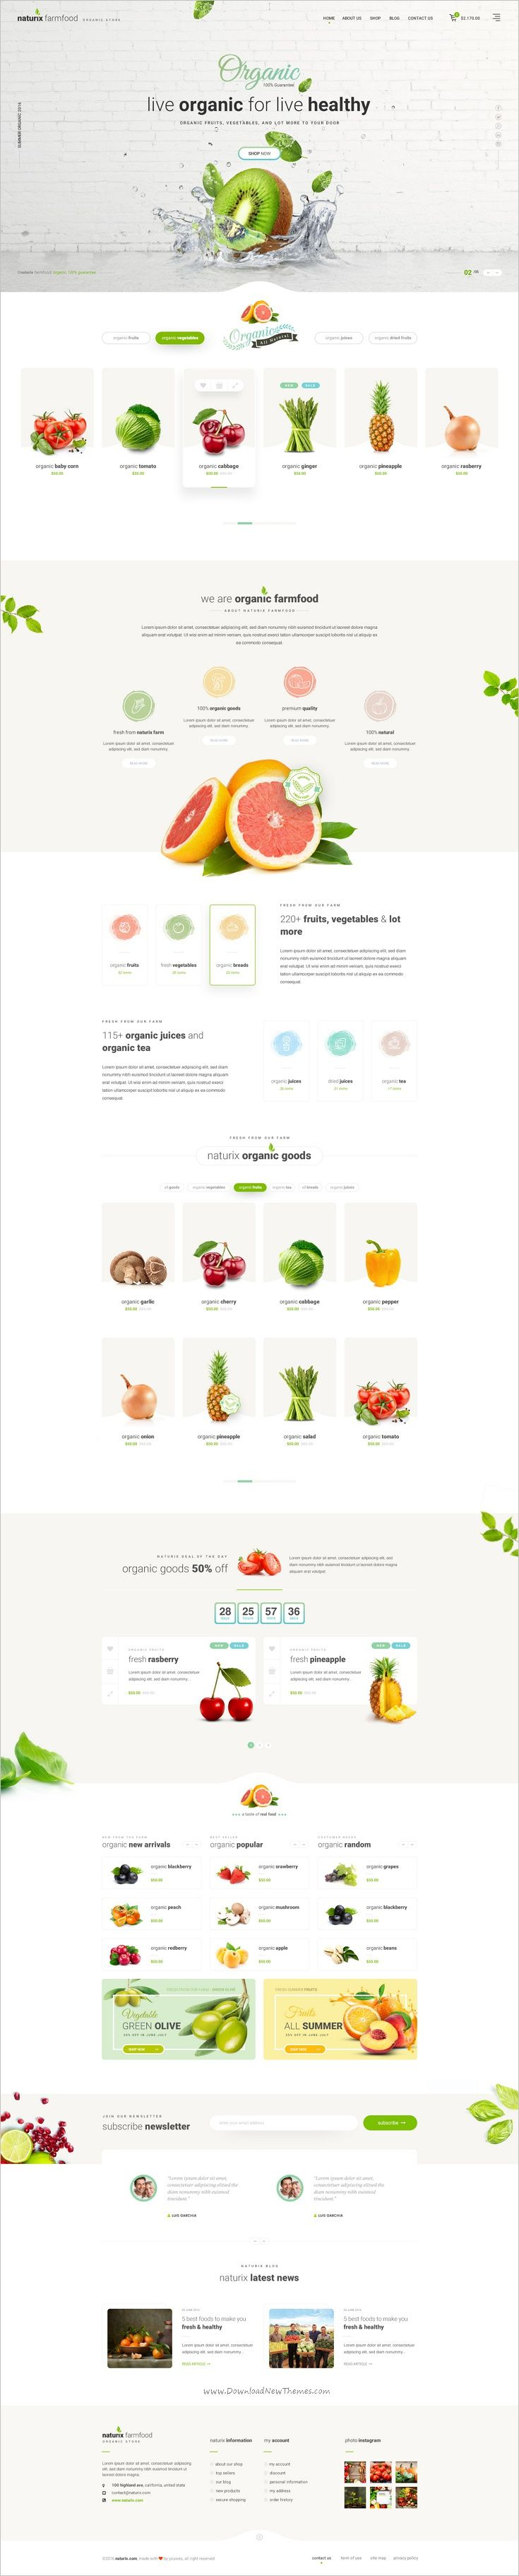 Naturix is a modern and elegant design #Photoshop template for #webdev stunning #organic store eCommerce websites download now➩ https://themeforest.net/item/naturix-organic-store-psd-template/19184061?ref=Datasata - Love a good success story? Learn how I went from zero to 1 million in sales in 5 months with an e-commerce stor